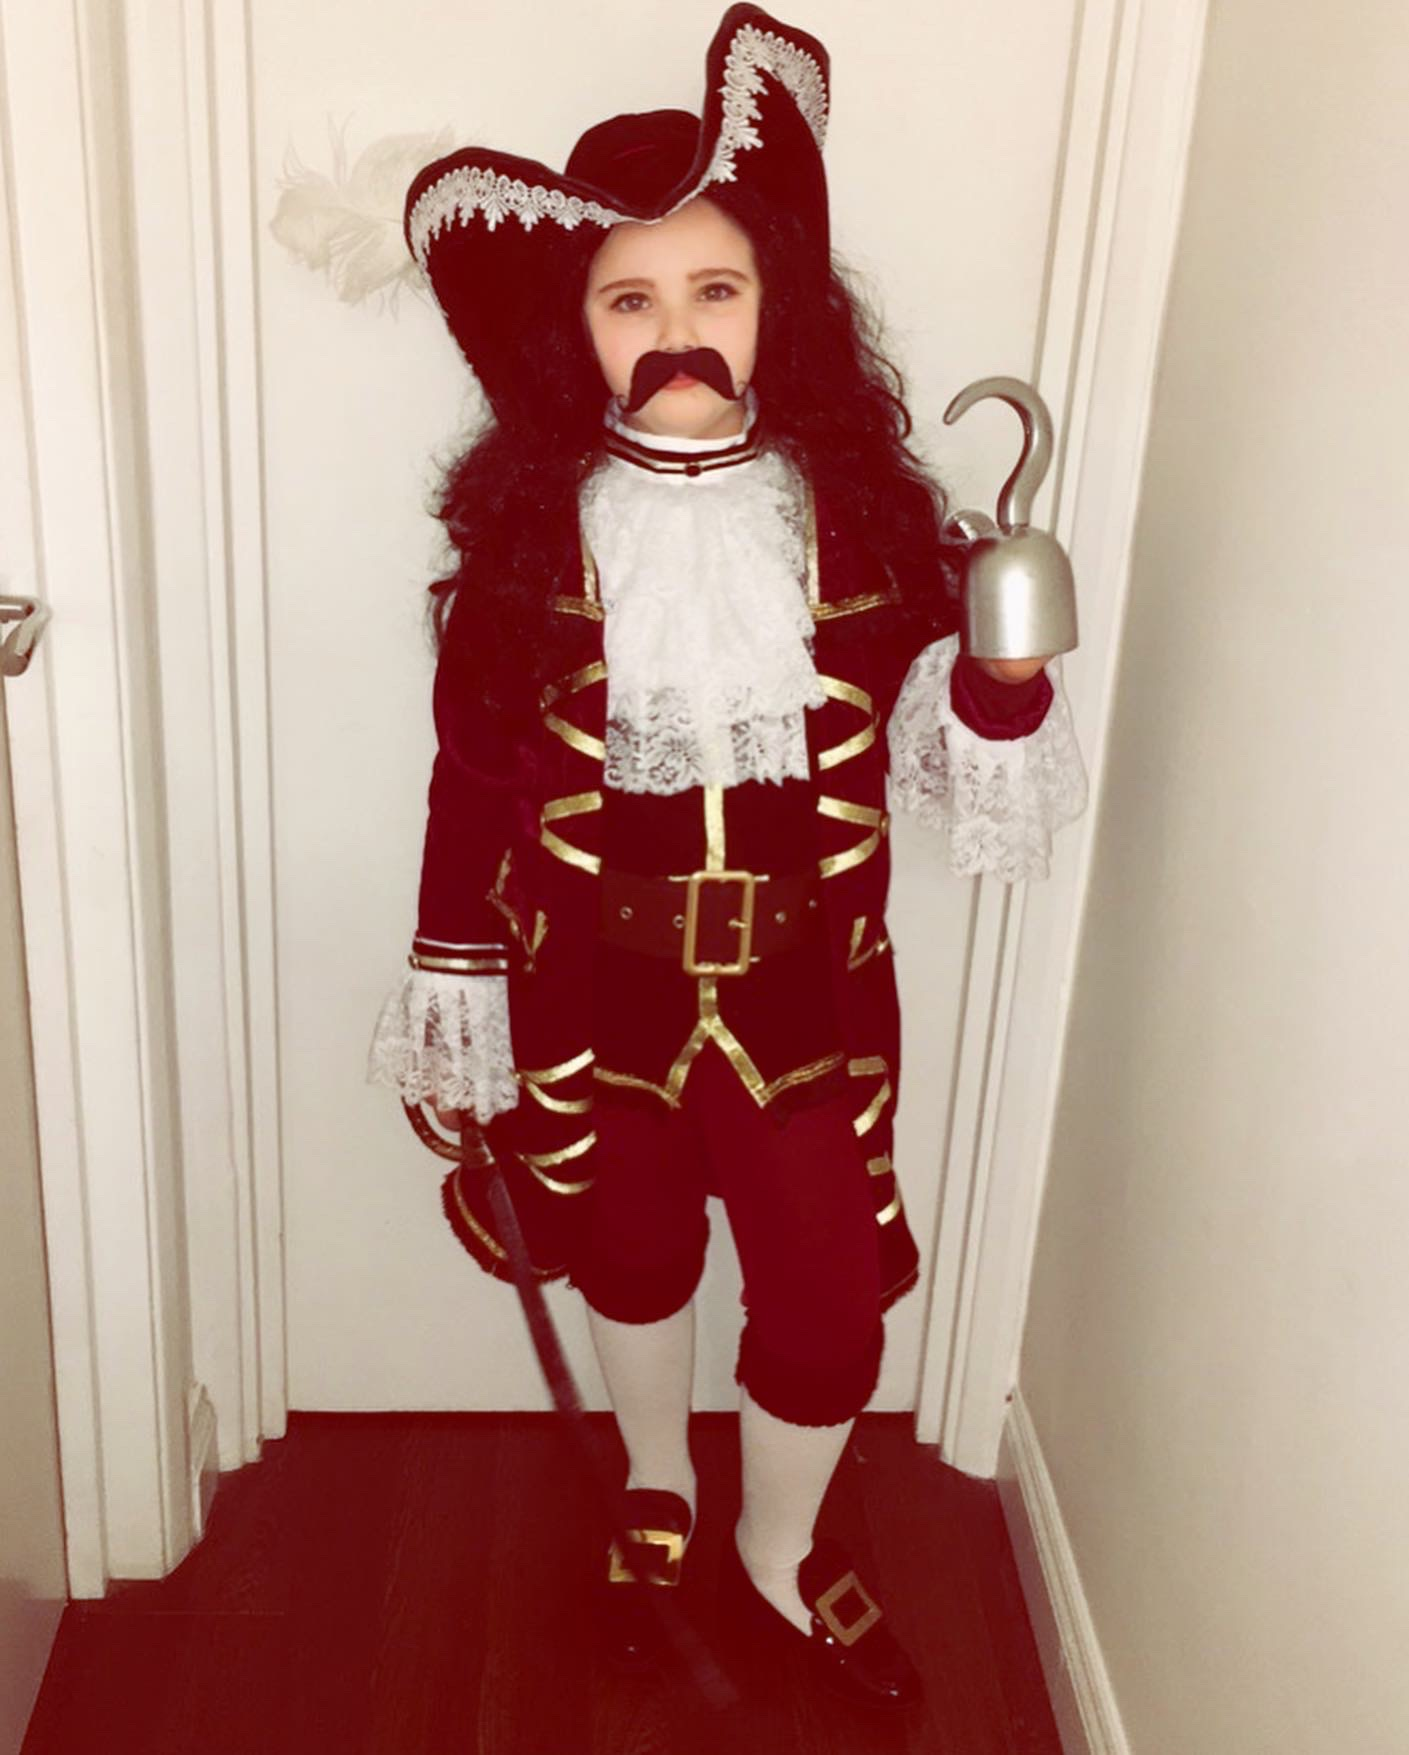 Droitwich Advertiser: Delilah age 8 as Captain Hook her costume is hand made head to toe and she helped her mum make it!